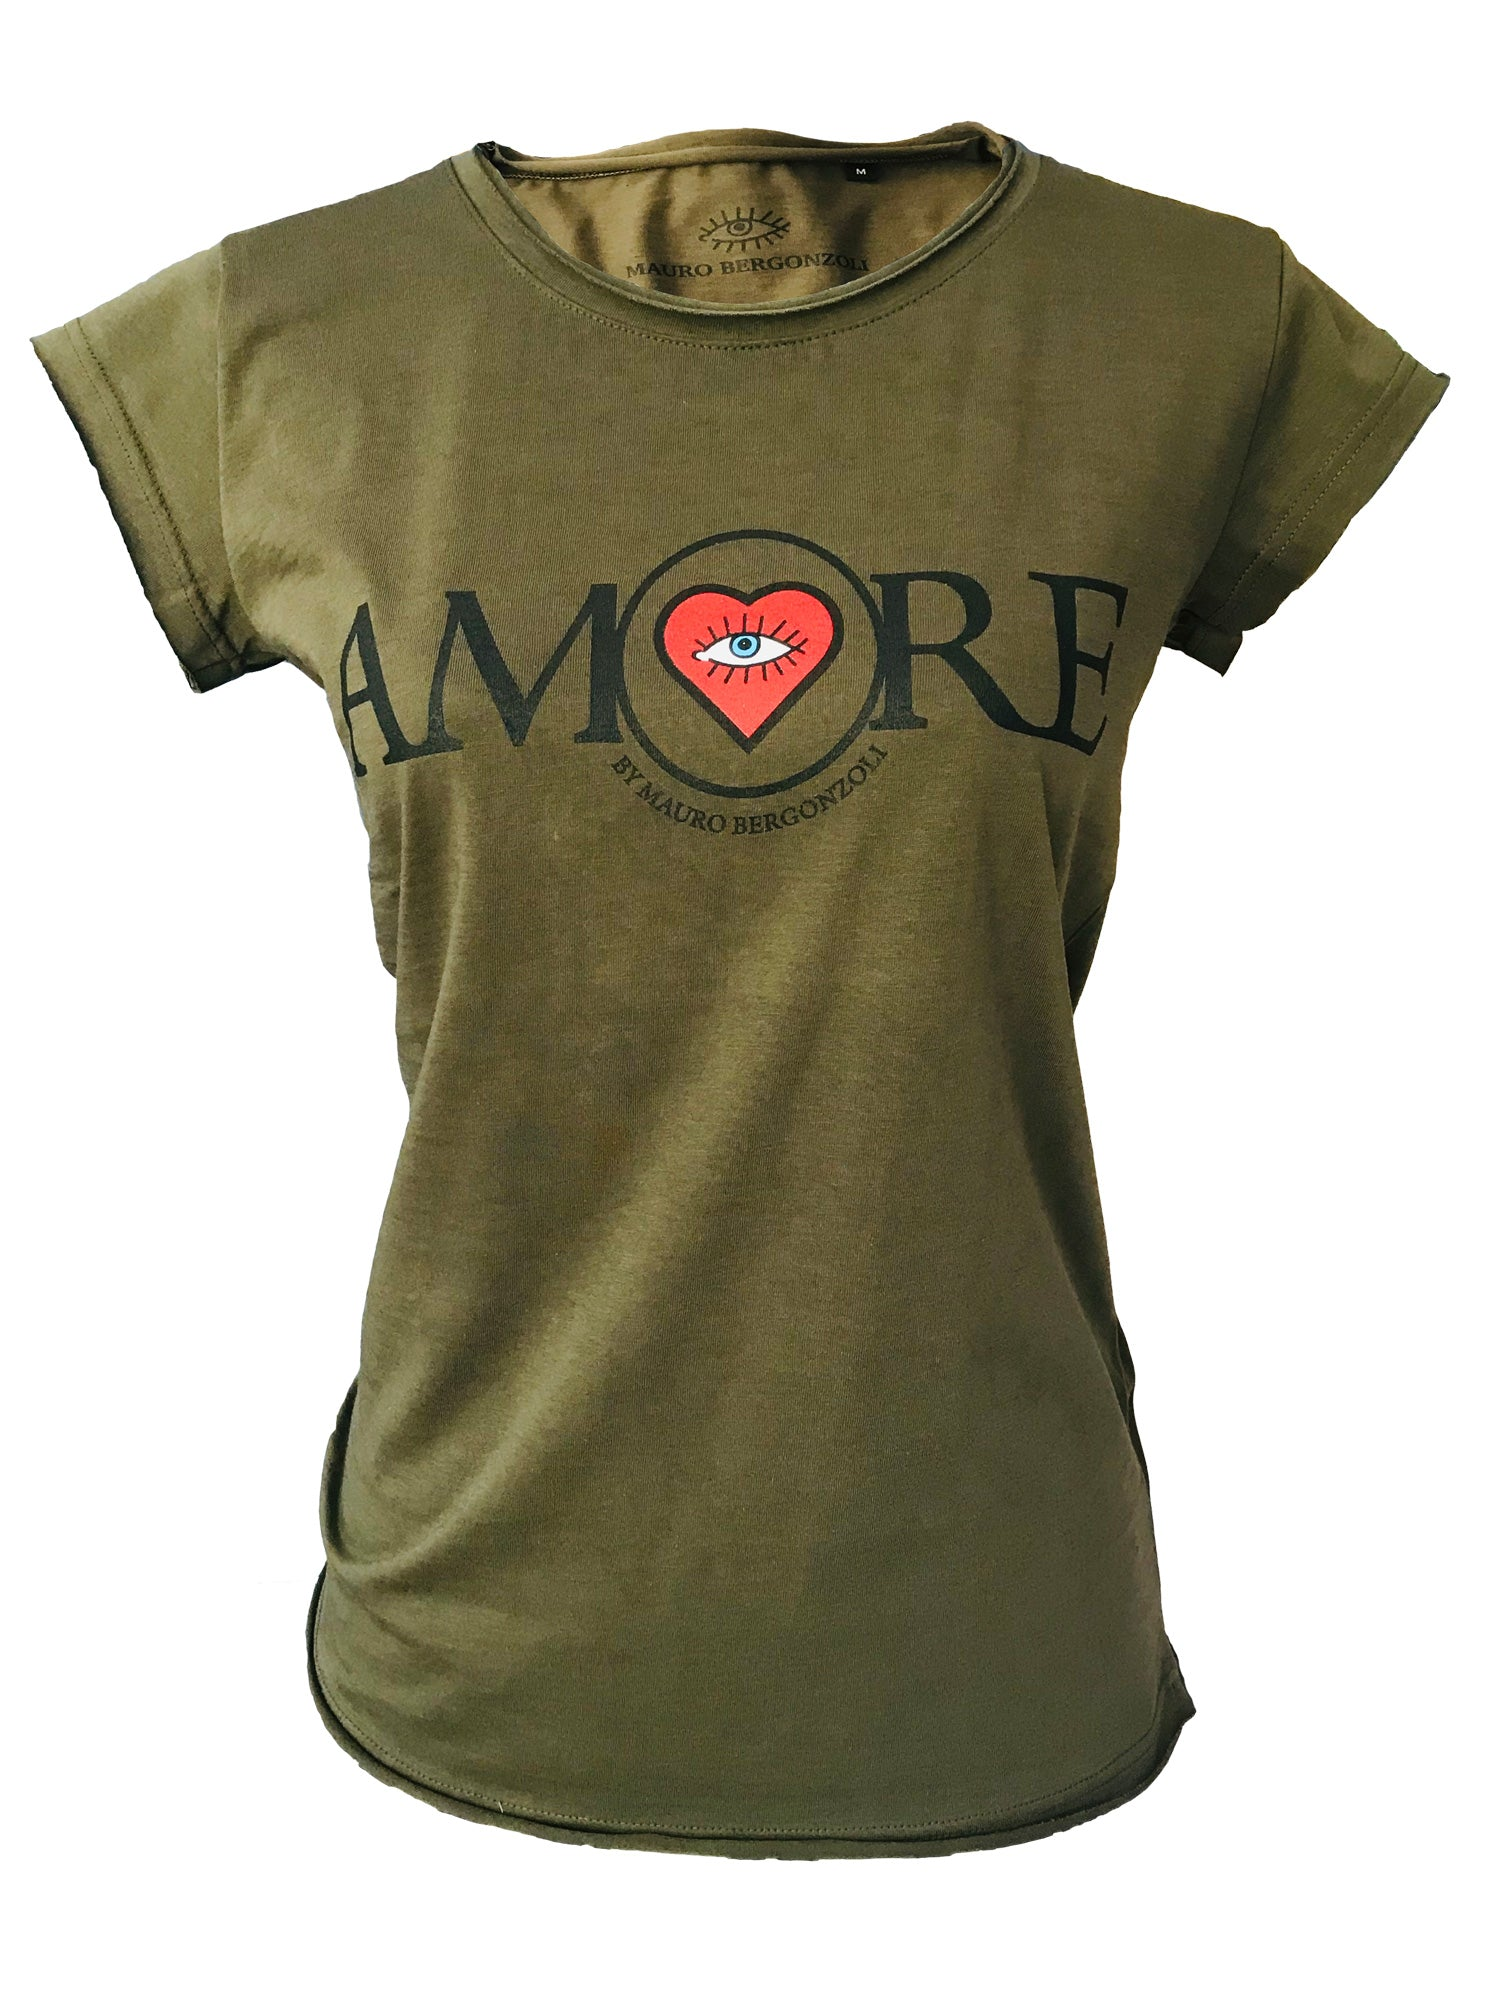 T-Shirt in Colour Military - AMORE by Mauro Bergonzoli